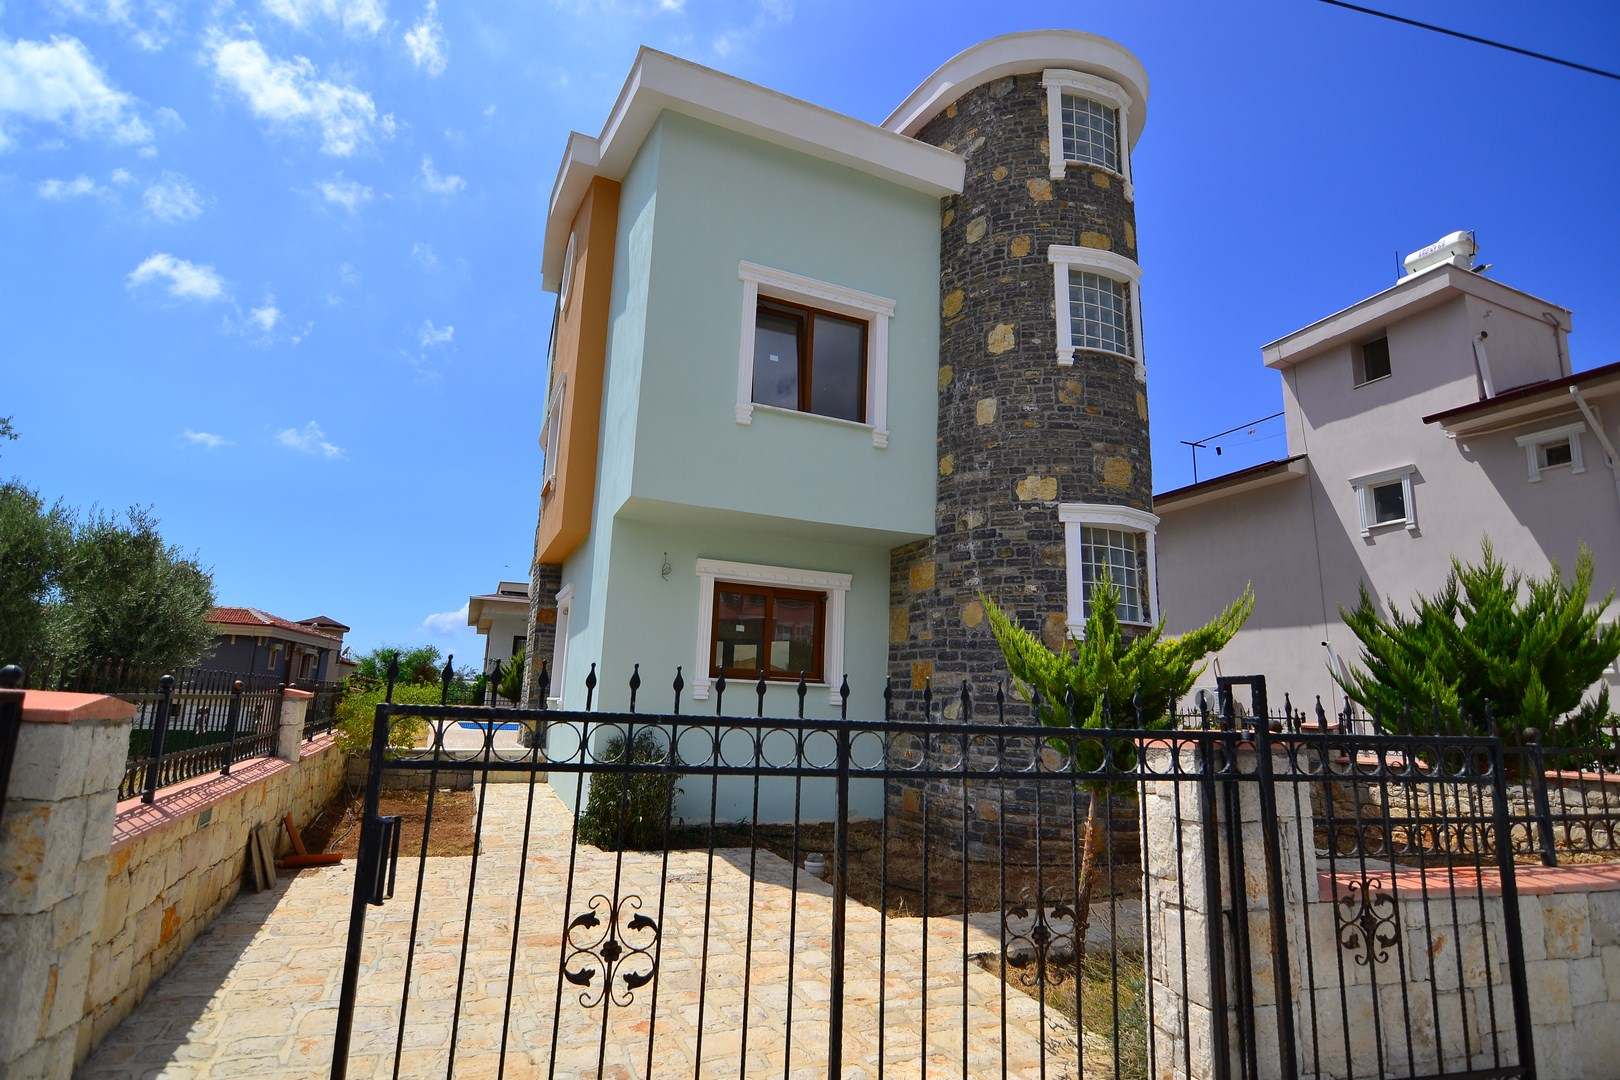 5 Bedroom Detached Villa for sale in Akbuk (Sold)